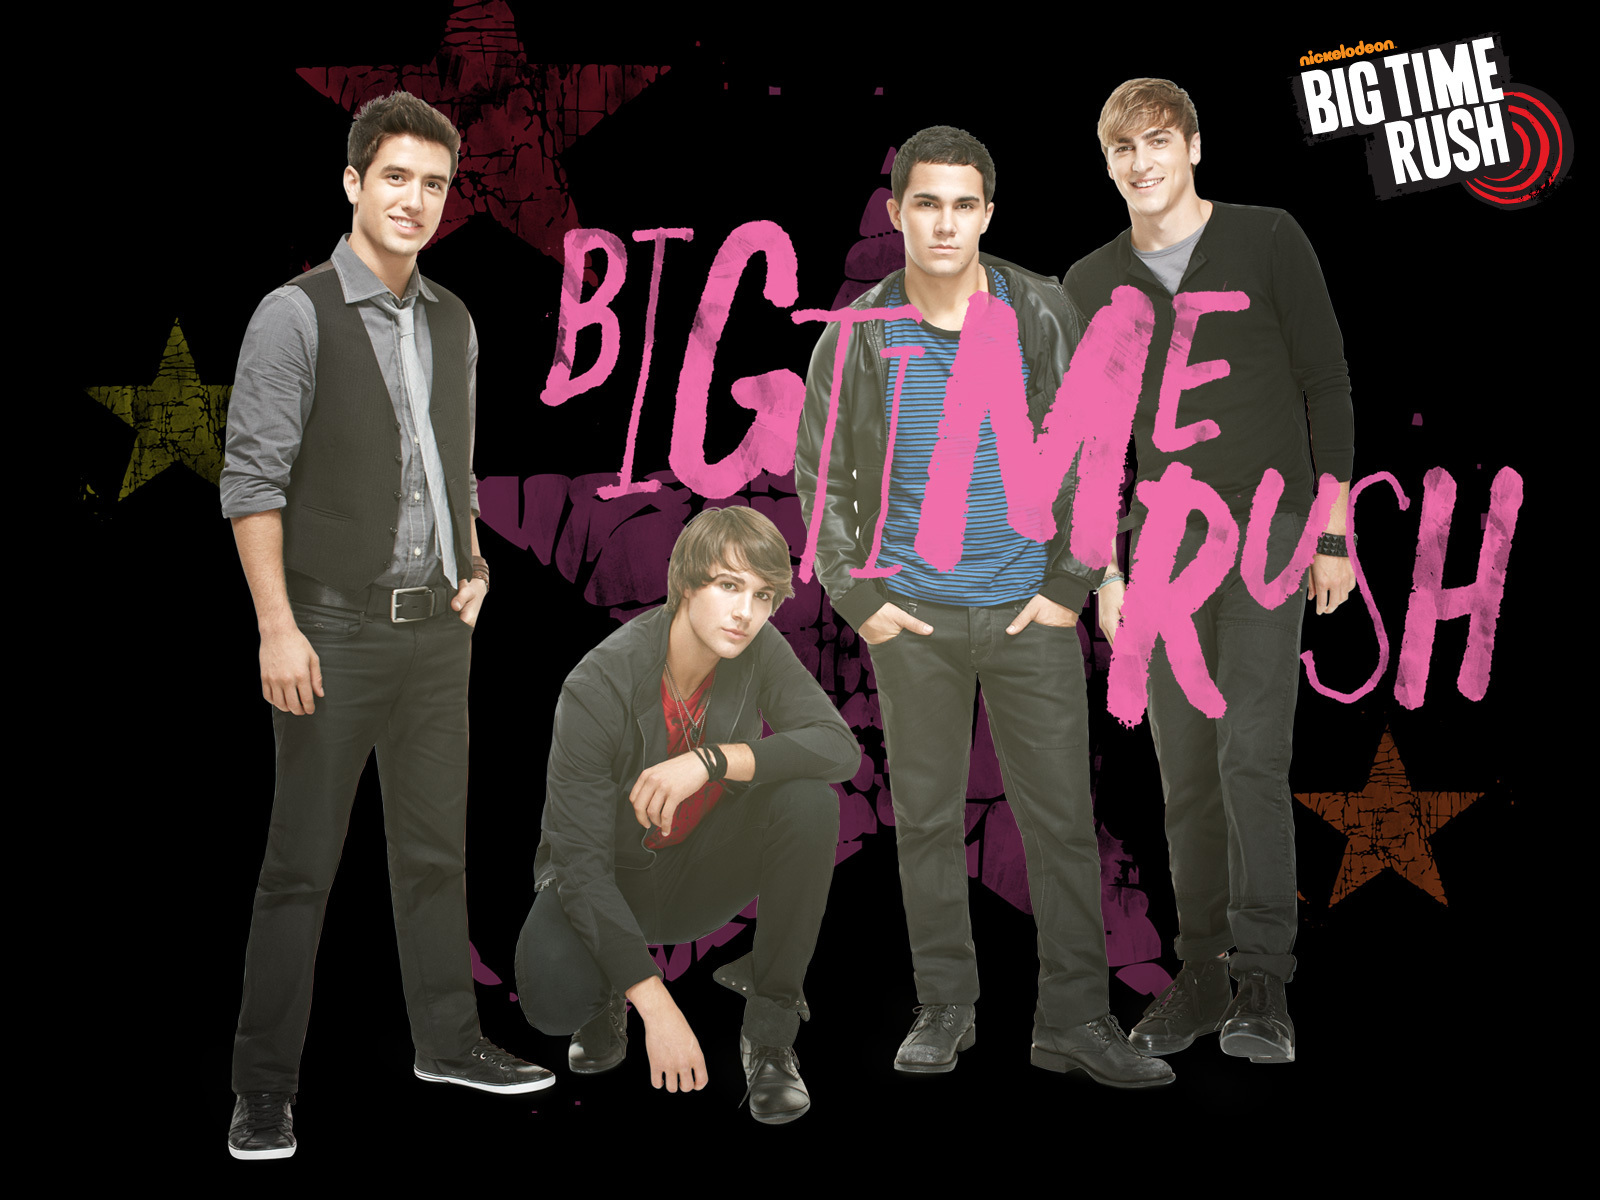 big time rush images btr wallpaper hd wallpaper and